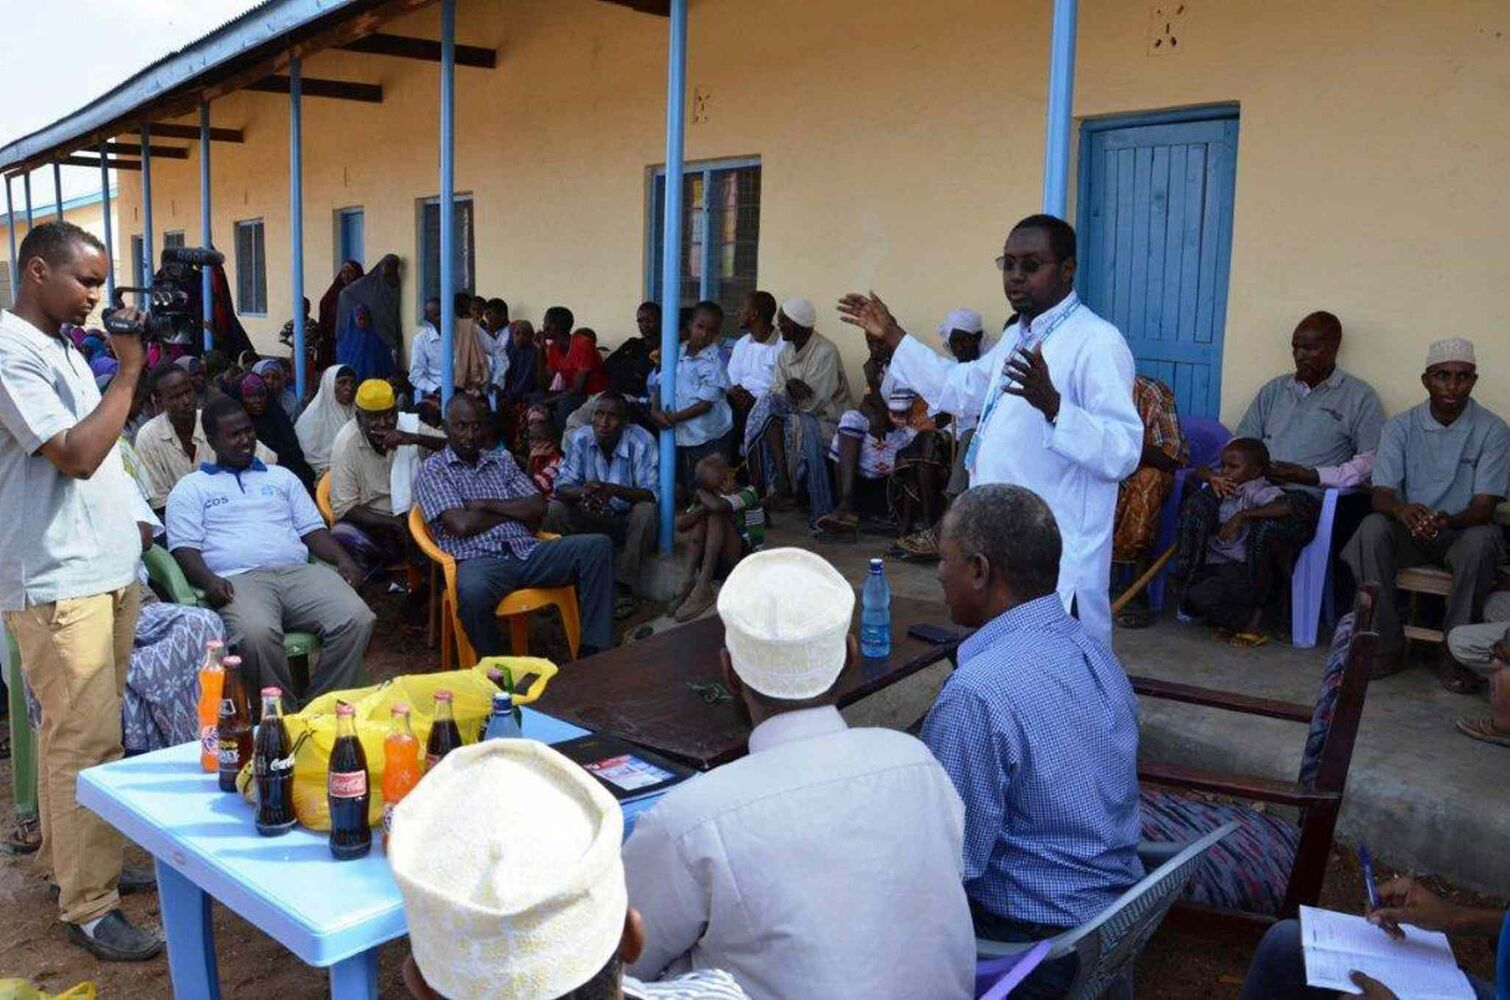 Ahmed Warsame in white shirt -  UNHCR Head of Operations inaugurating the launching of Humankind Academy in Dagahaley camp on Jan. 16, 2013